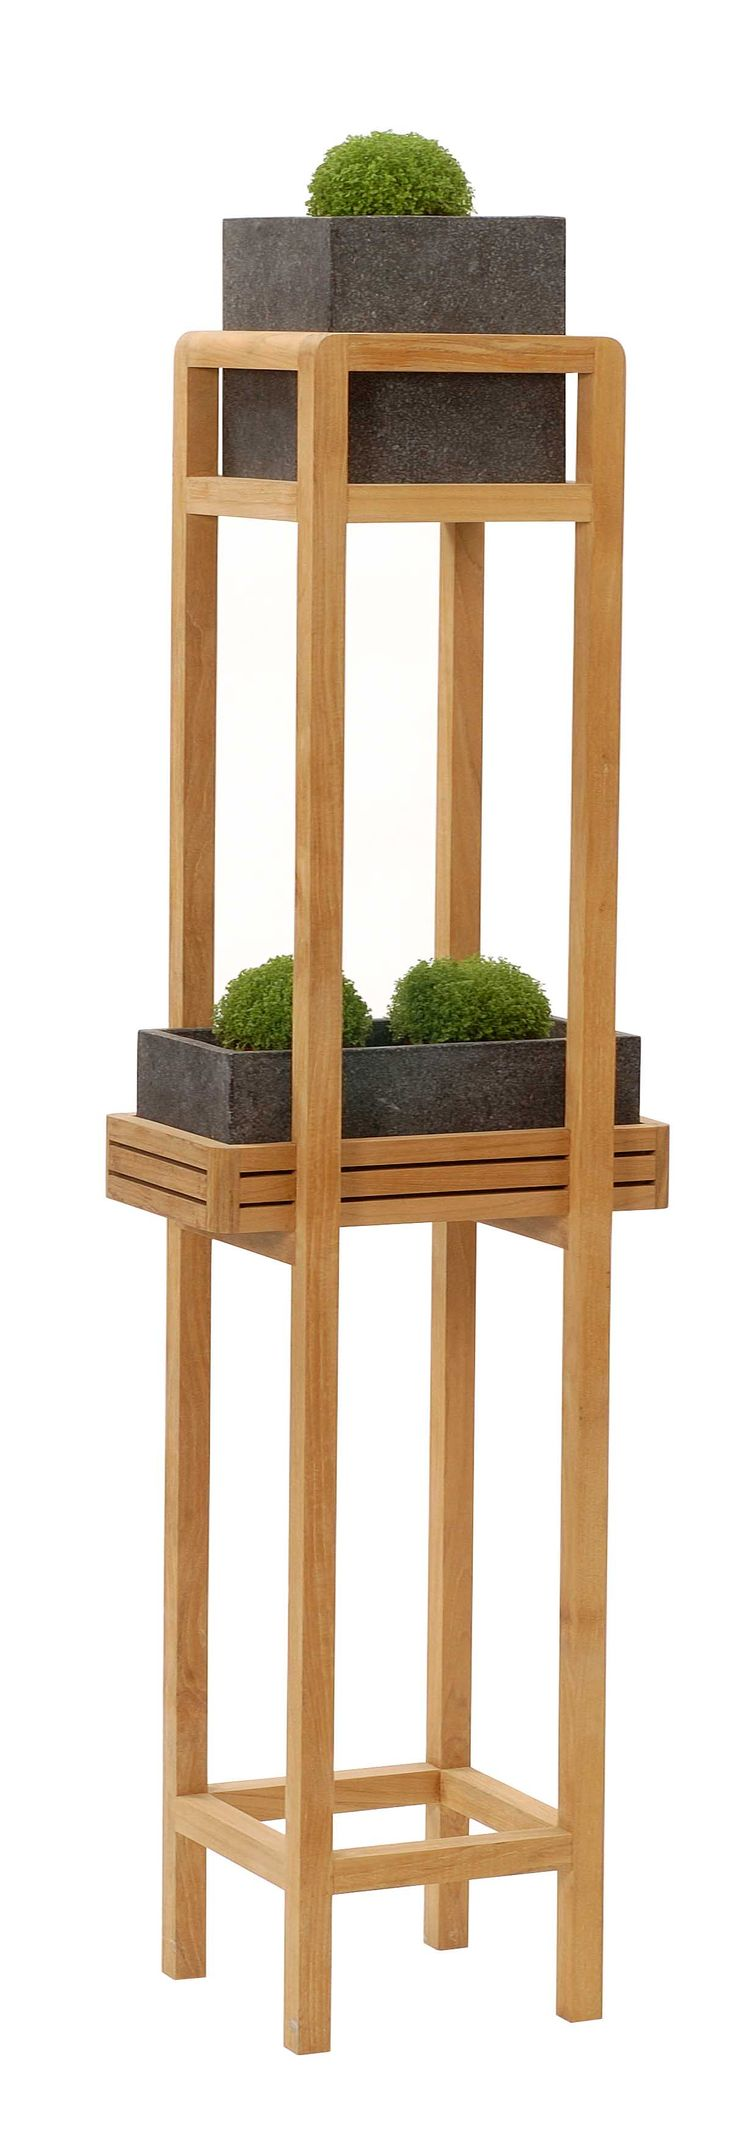 Serre Tall Plant Stand - Without Shelf